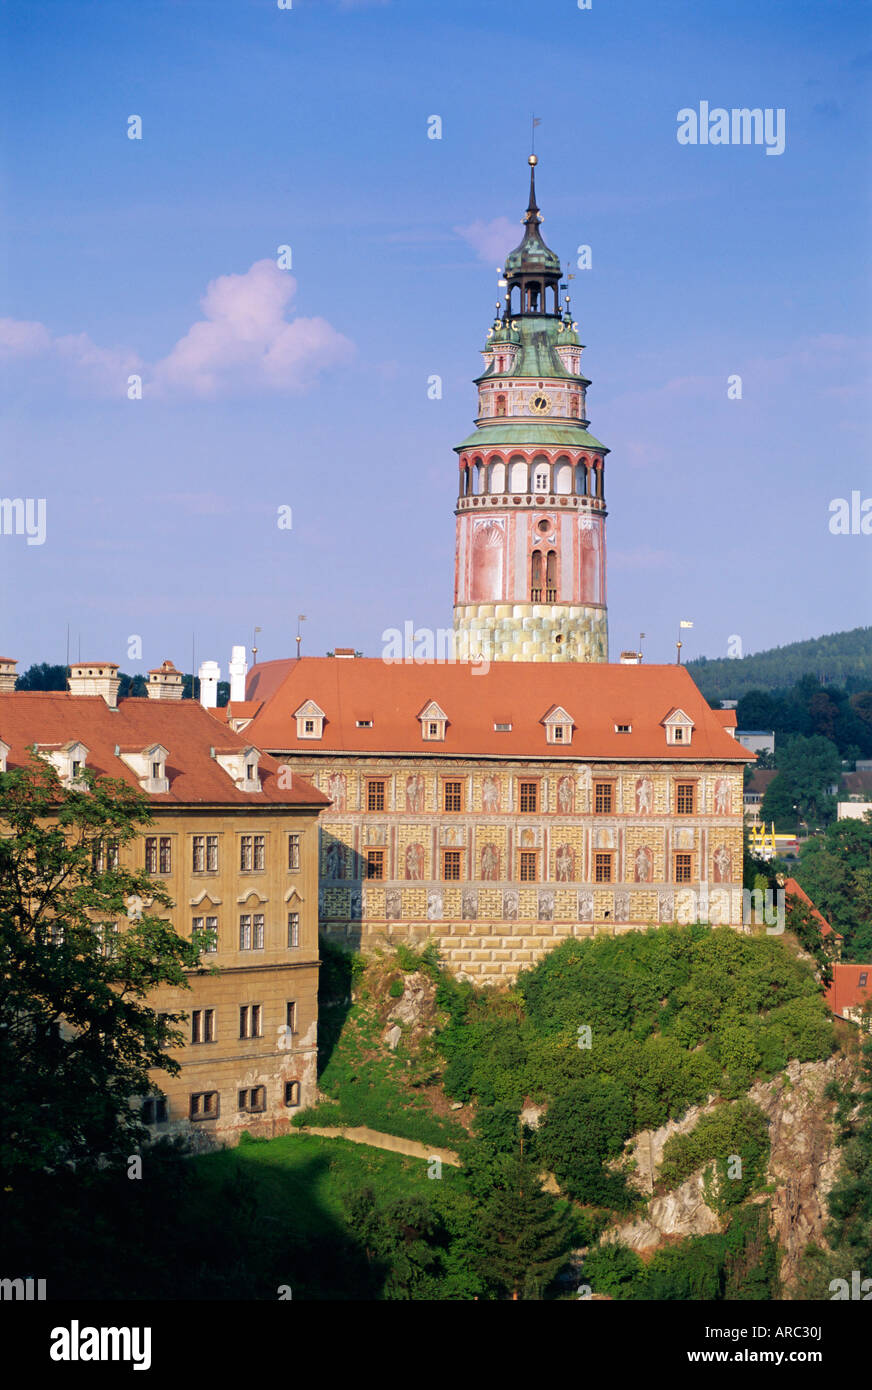 Krumlov Castle, Cesky Krumlov, South Bohemia, Czech Republic, Europe - Stock Image